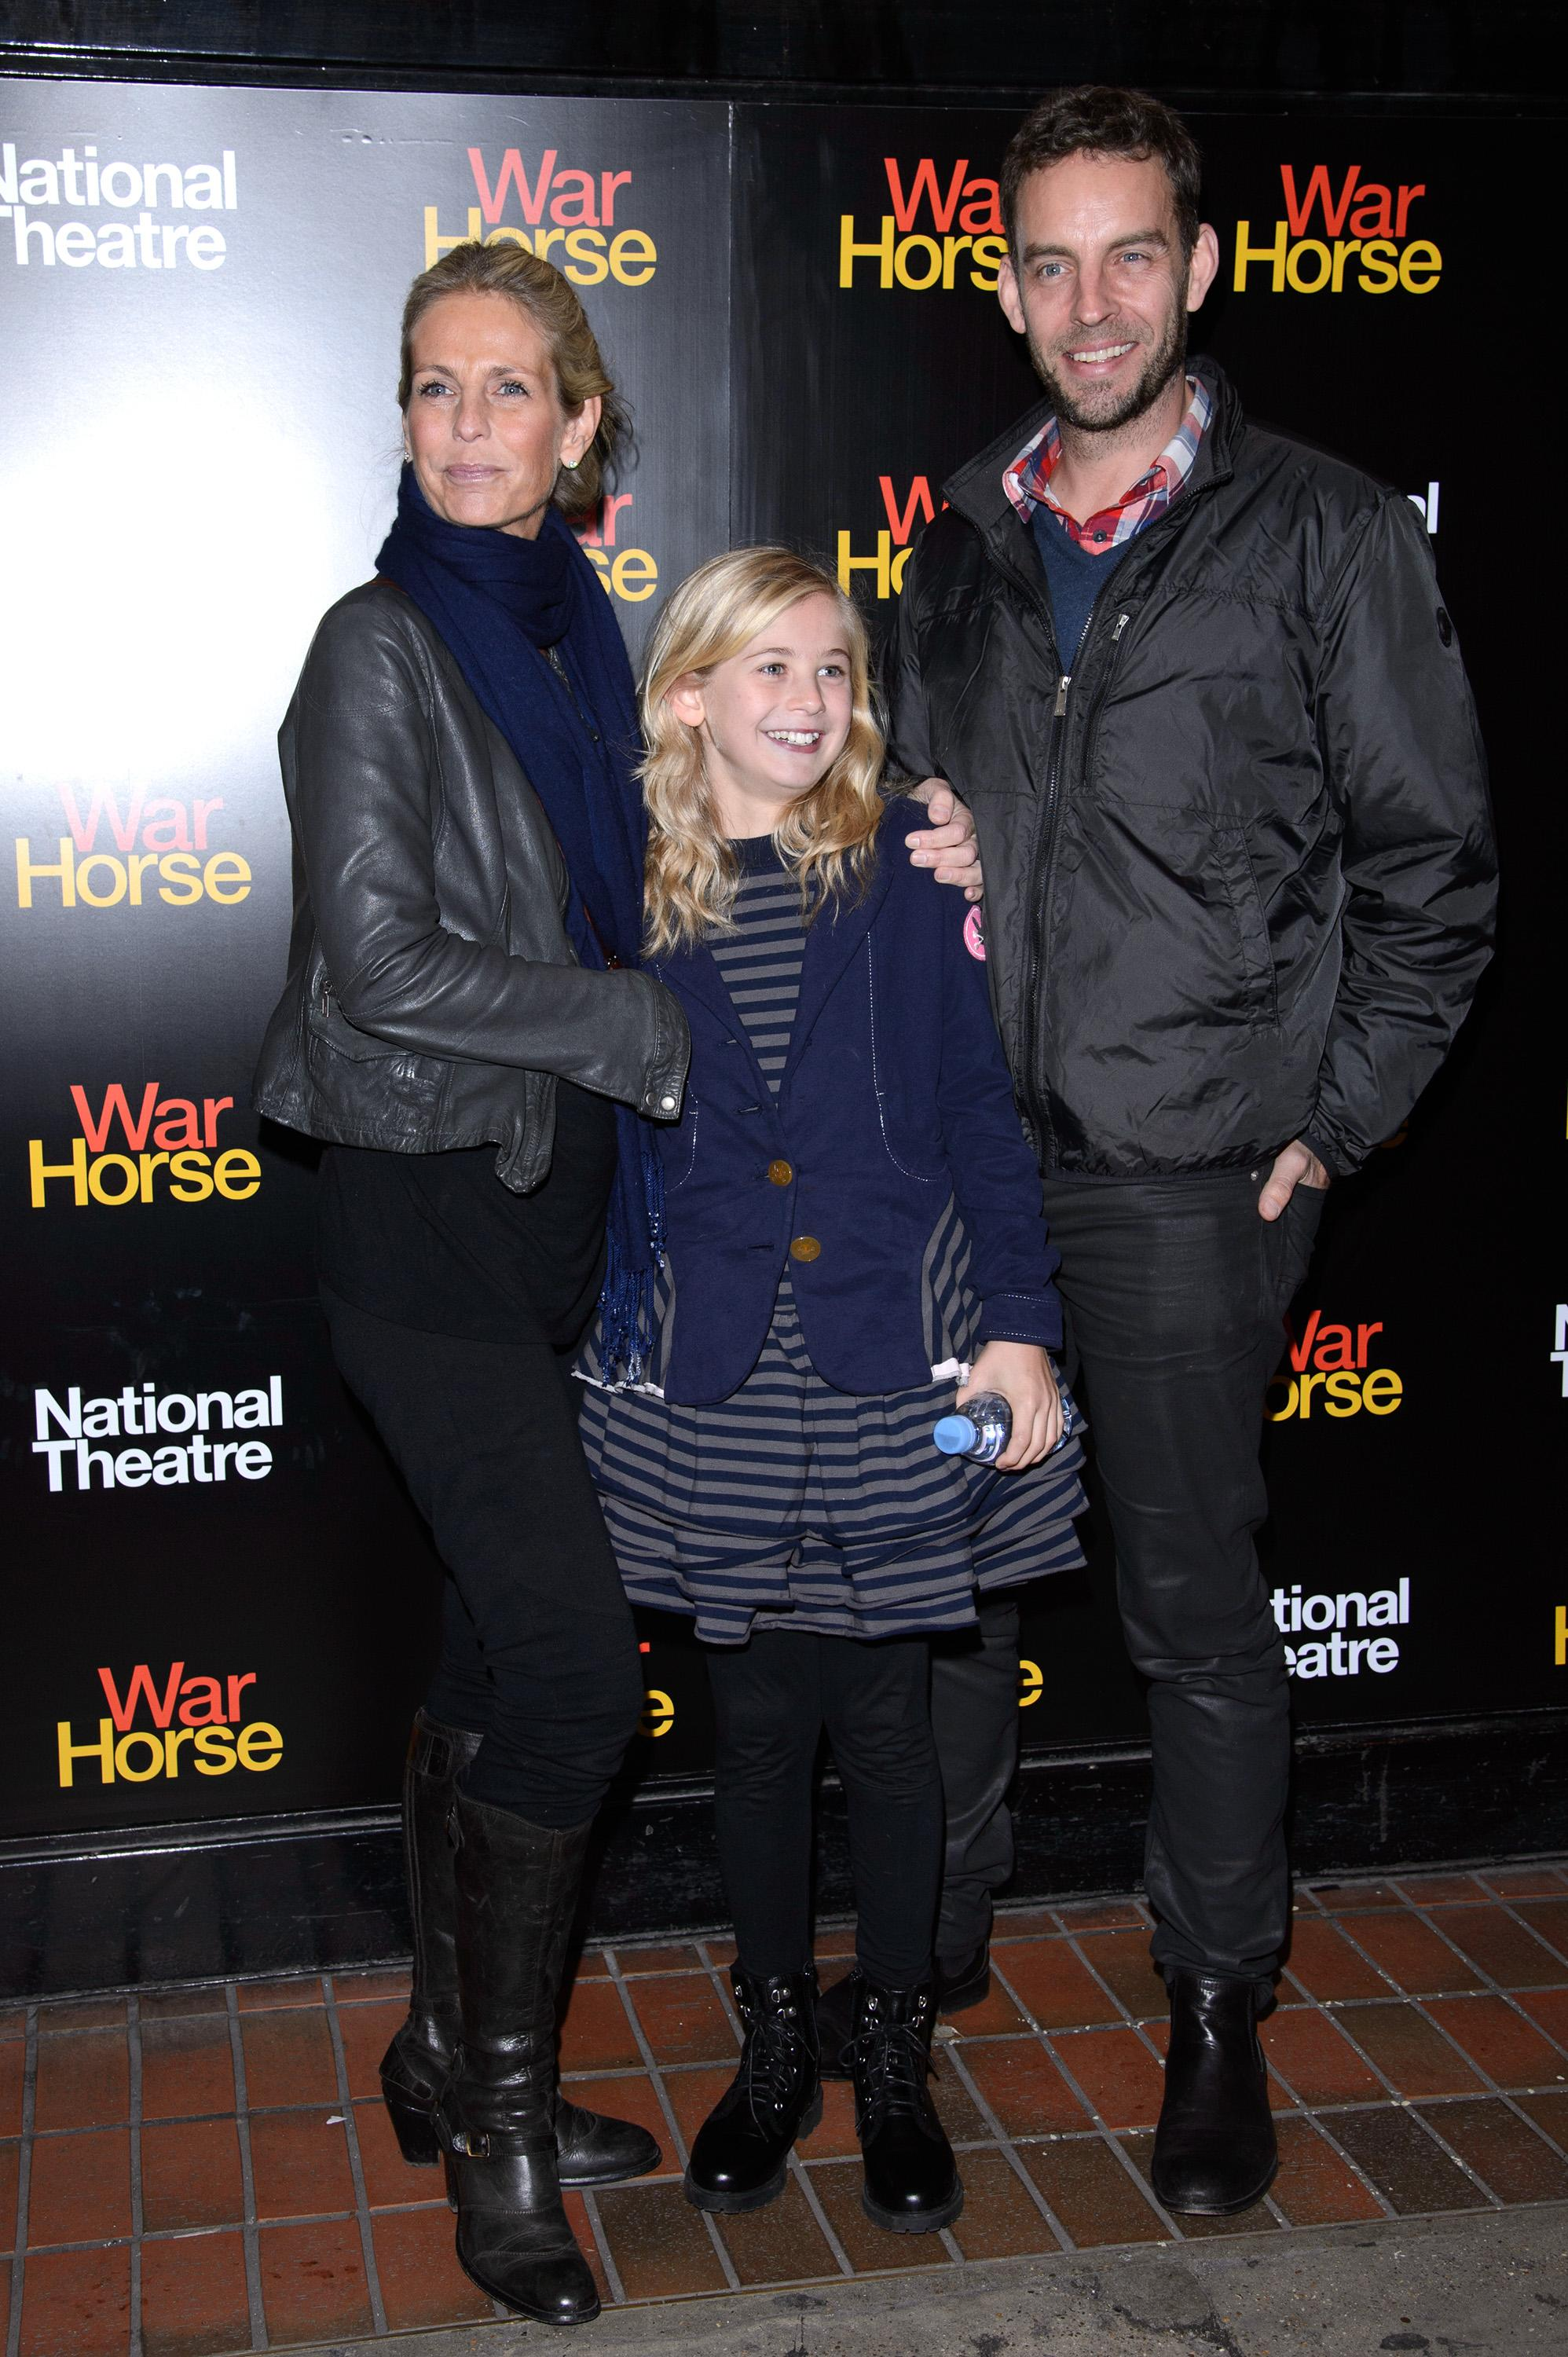 Ulrika Jonsson and Brian Monet attends the 5th anniversary performance of 'War Horse' at The New London Theatre, Drury Lane on October 25, 2012 in London, England. (Photo by Ben Pruchnie/Getty Images)